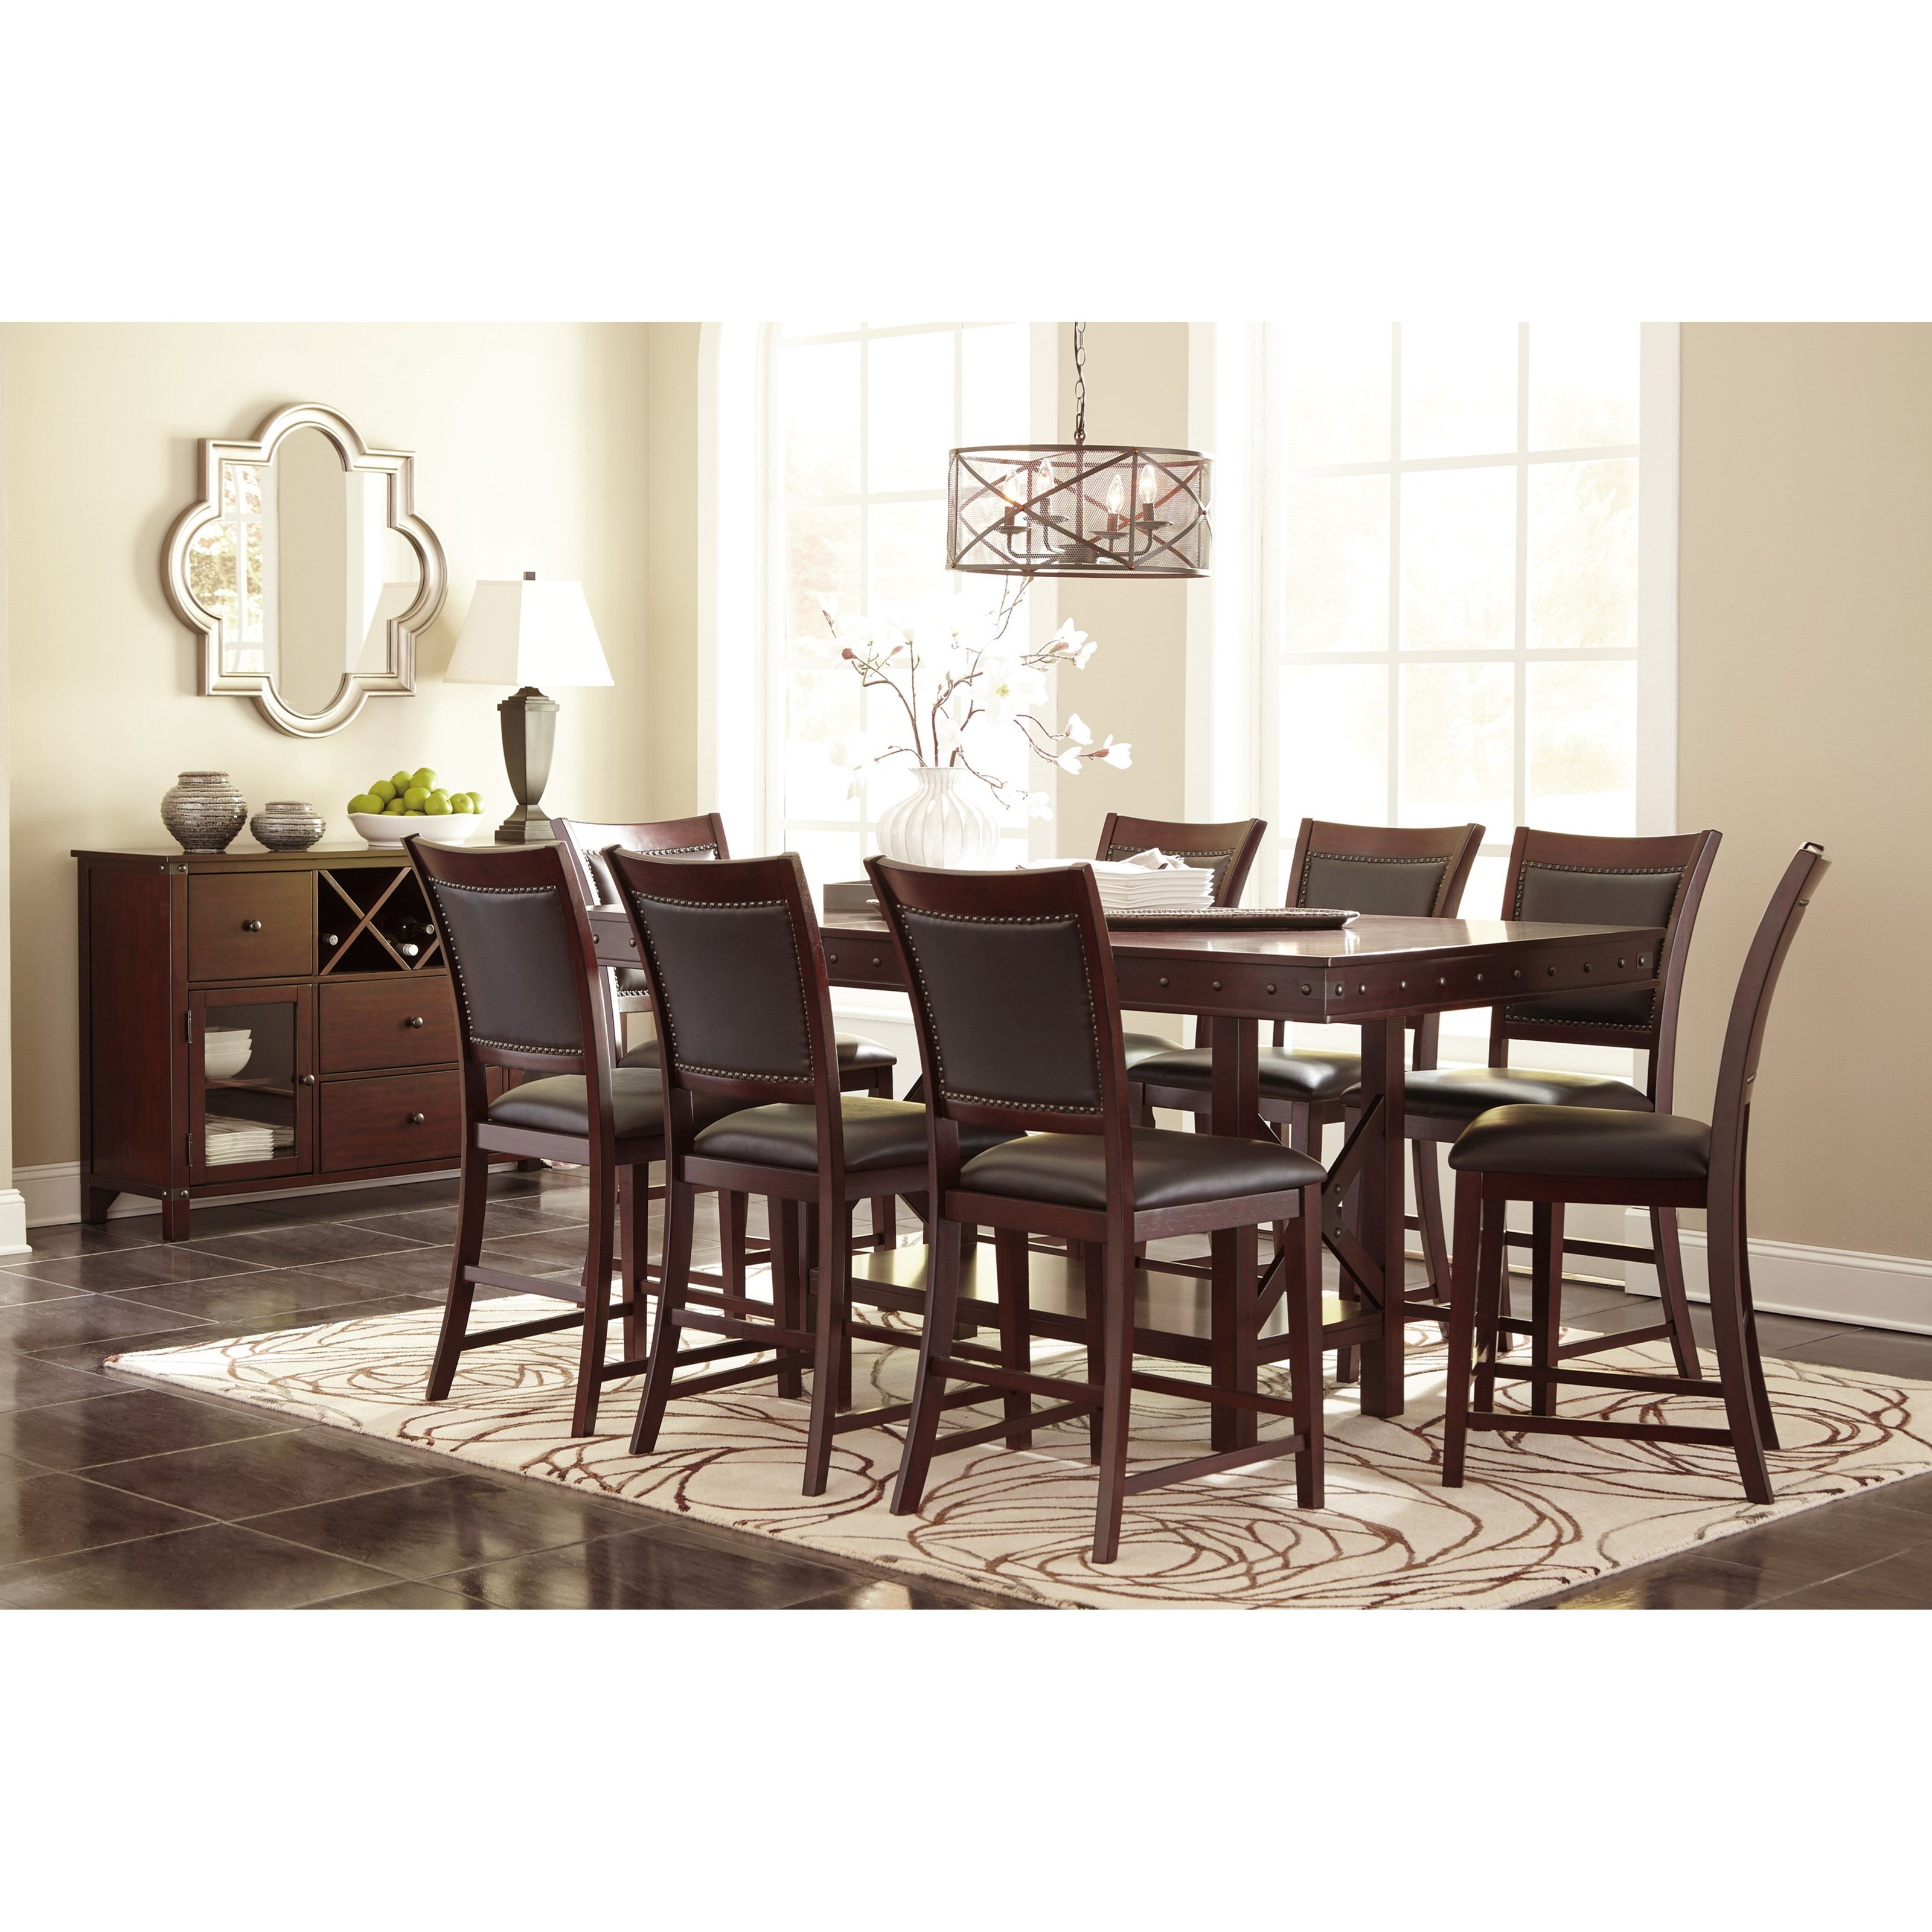 Signature design by ashley collenburg casual dining room for Casual dining room